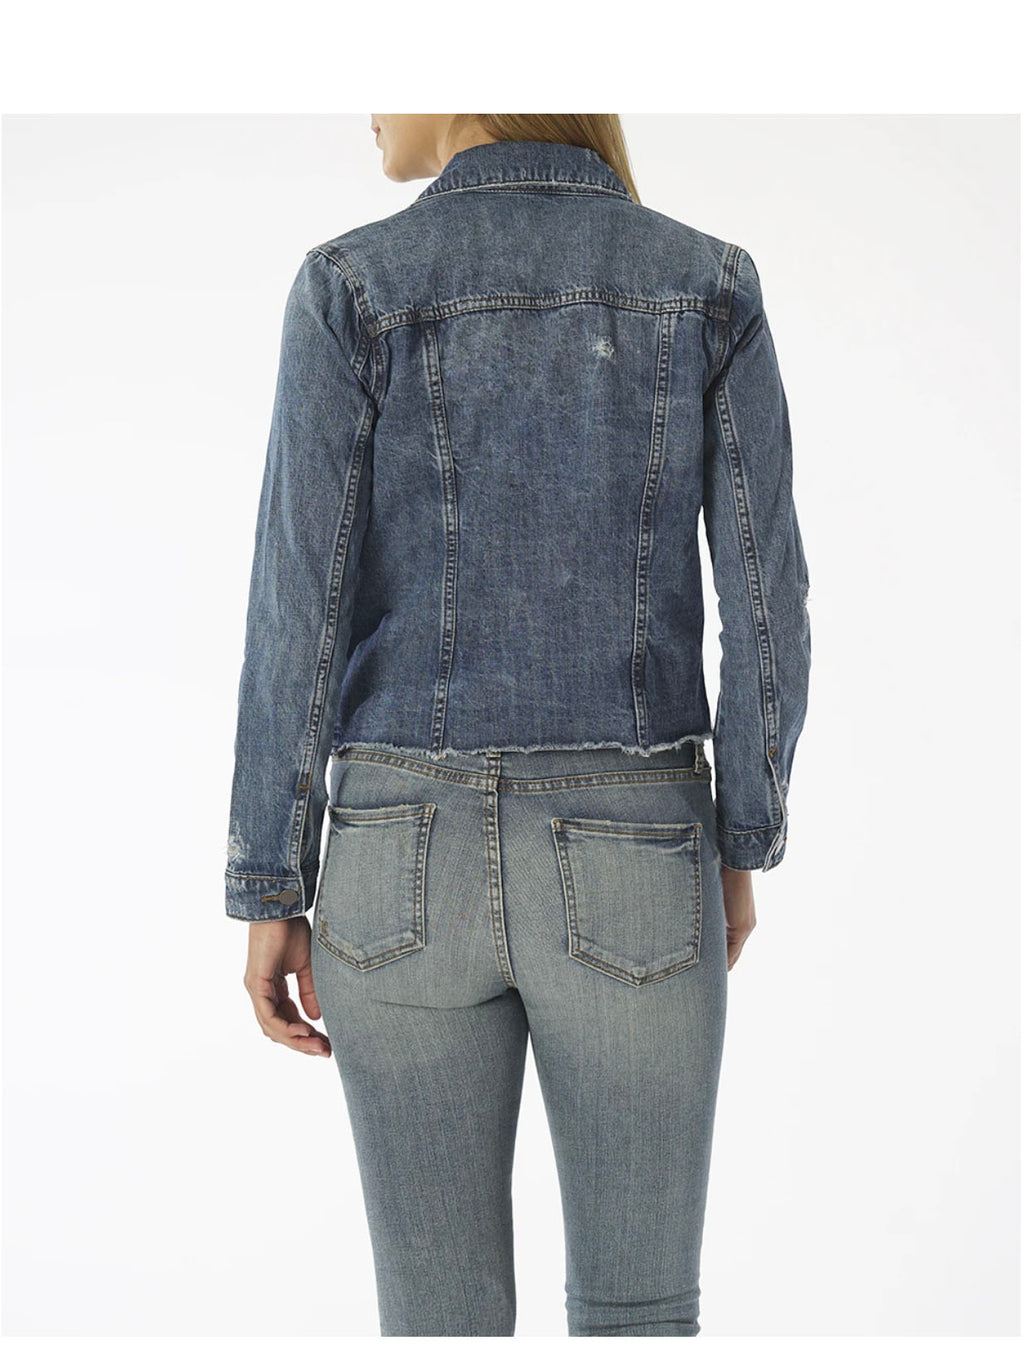 Kut Julia Cropped Jacket in Pushing